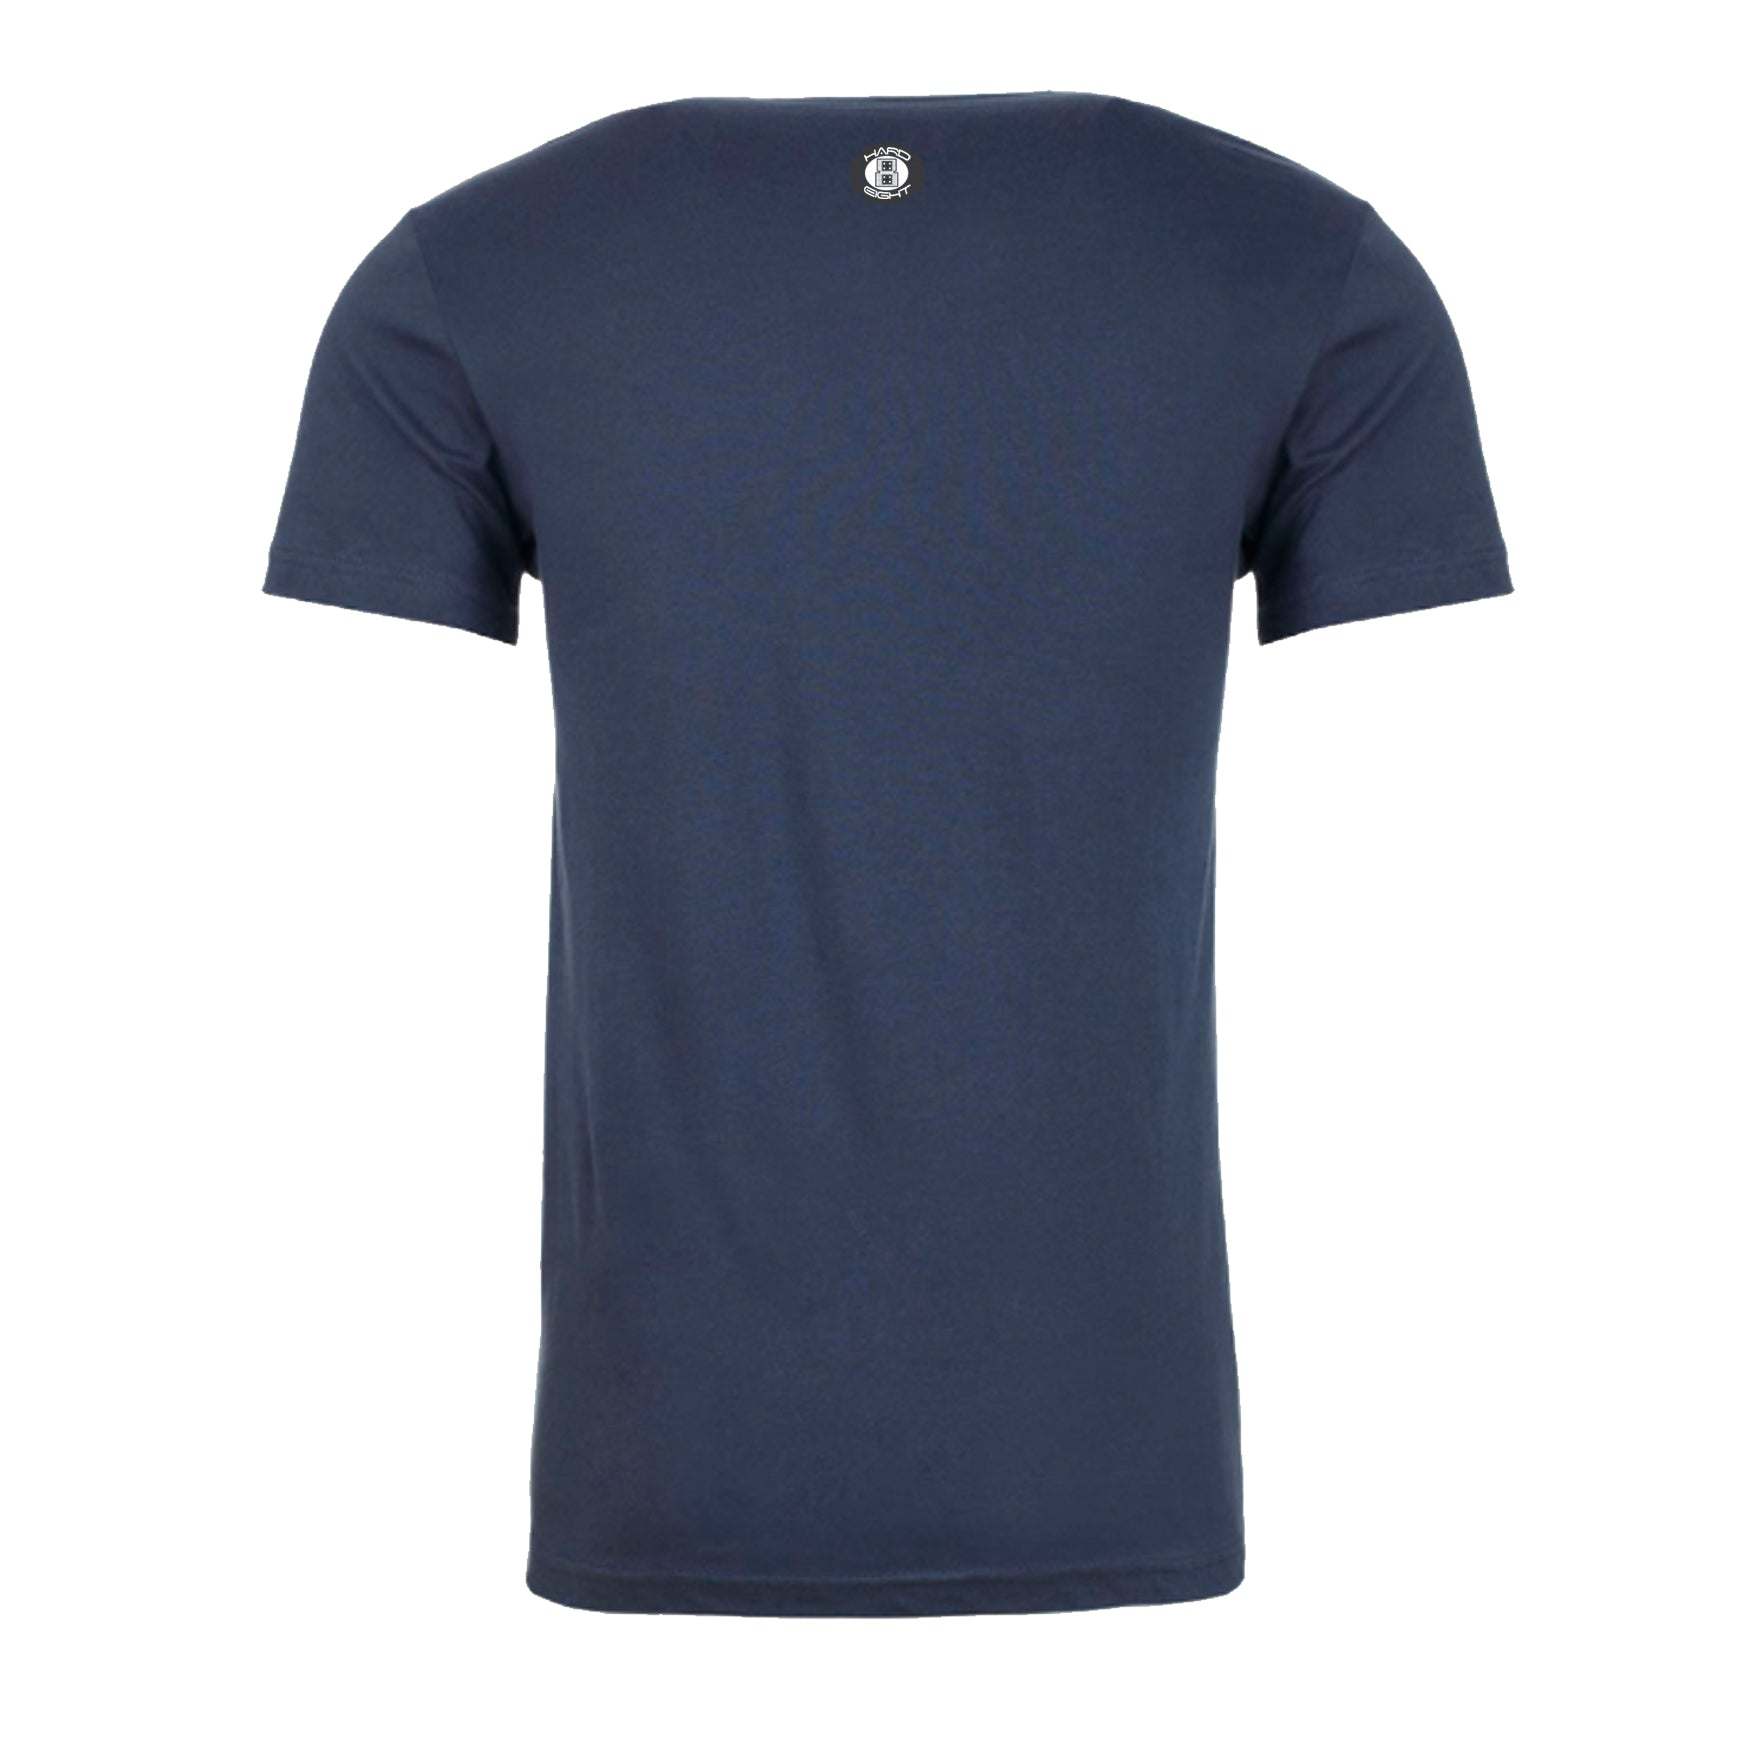 "MEN'S ""BLESSED"" LAUNDERED TRI-BLEND Crew-Neck Navy Heather/Silver"